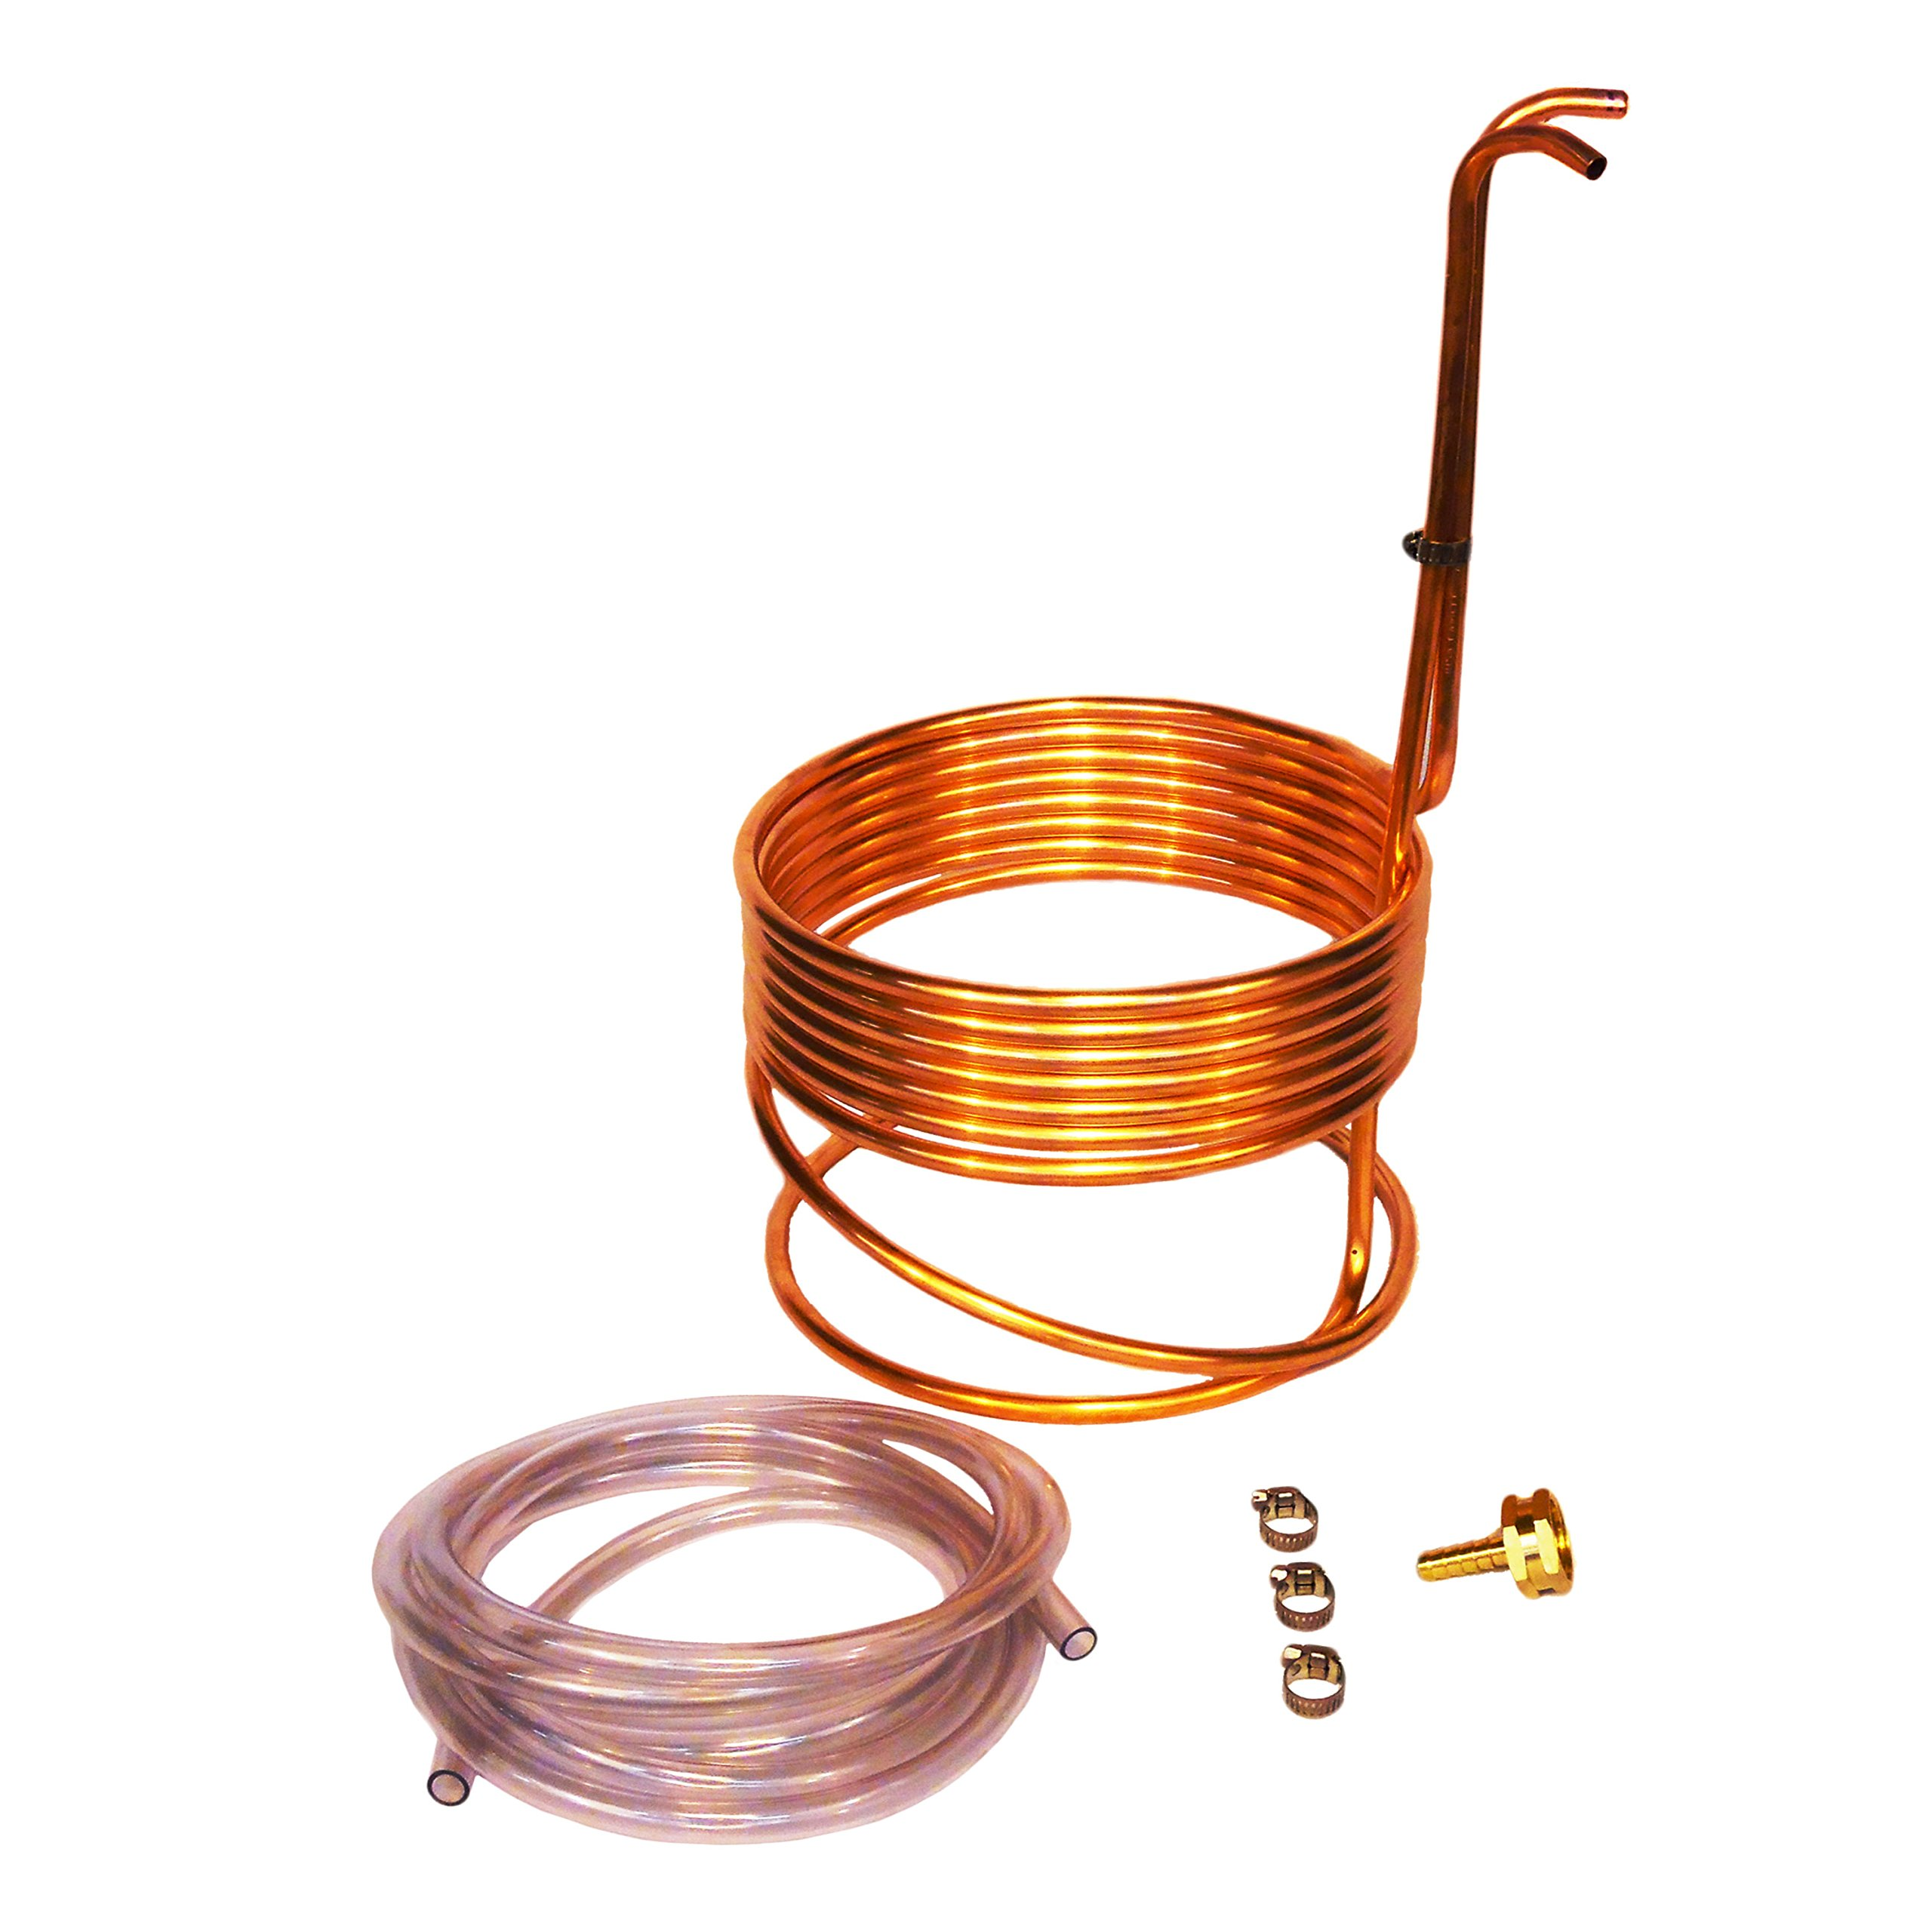 Super Efficient 8'' Compact Immersion Wort Chiller by NY Brew Supply